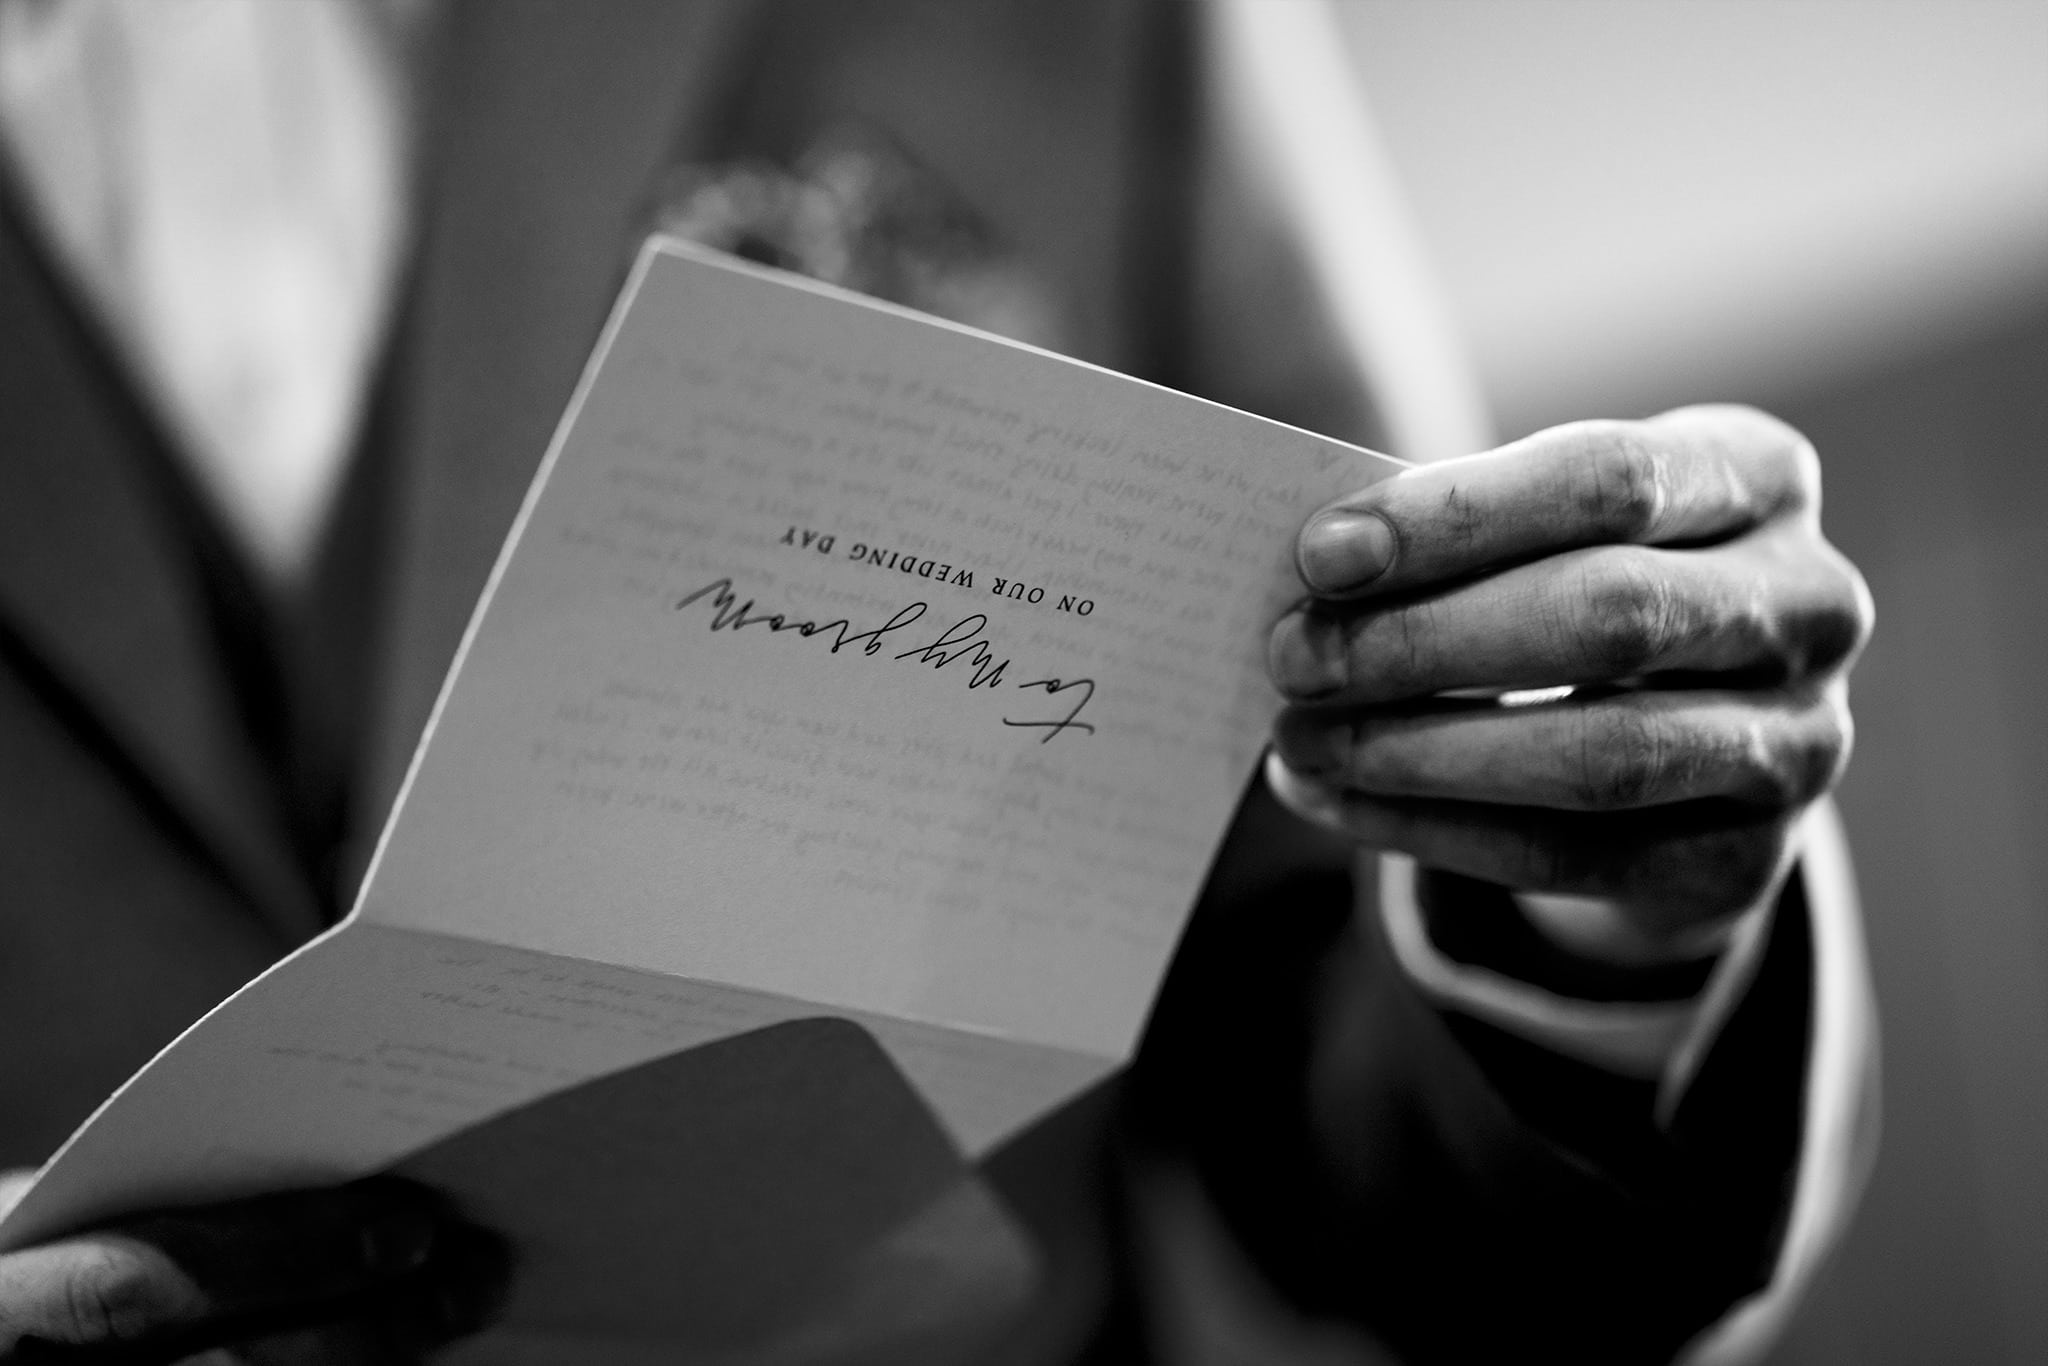 Groom opens note from bride on wedding day